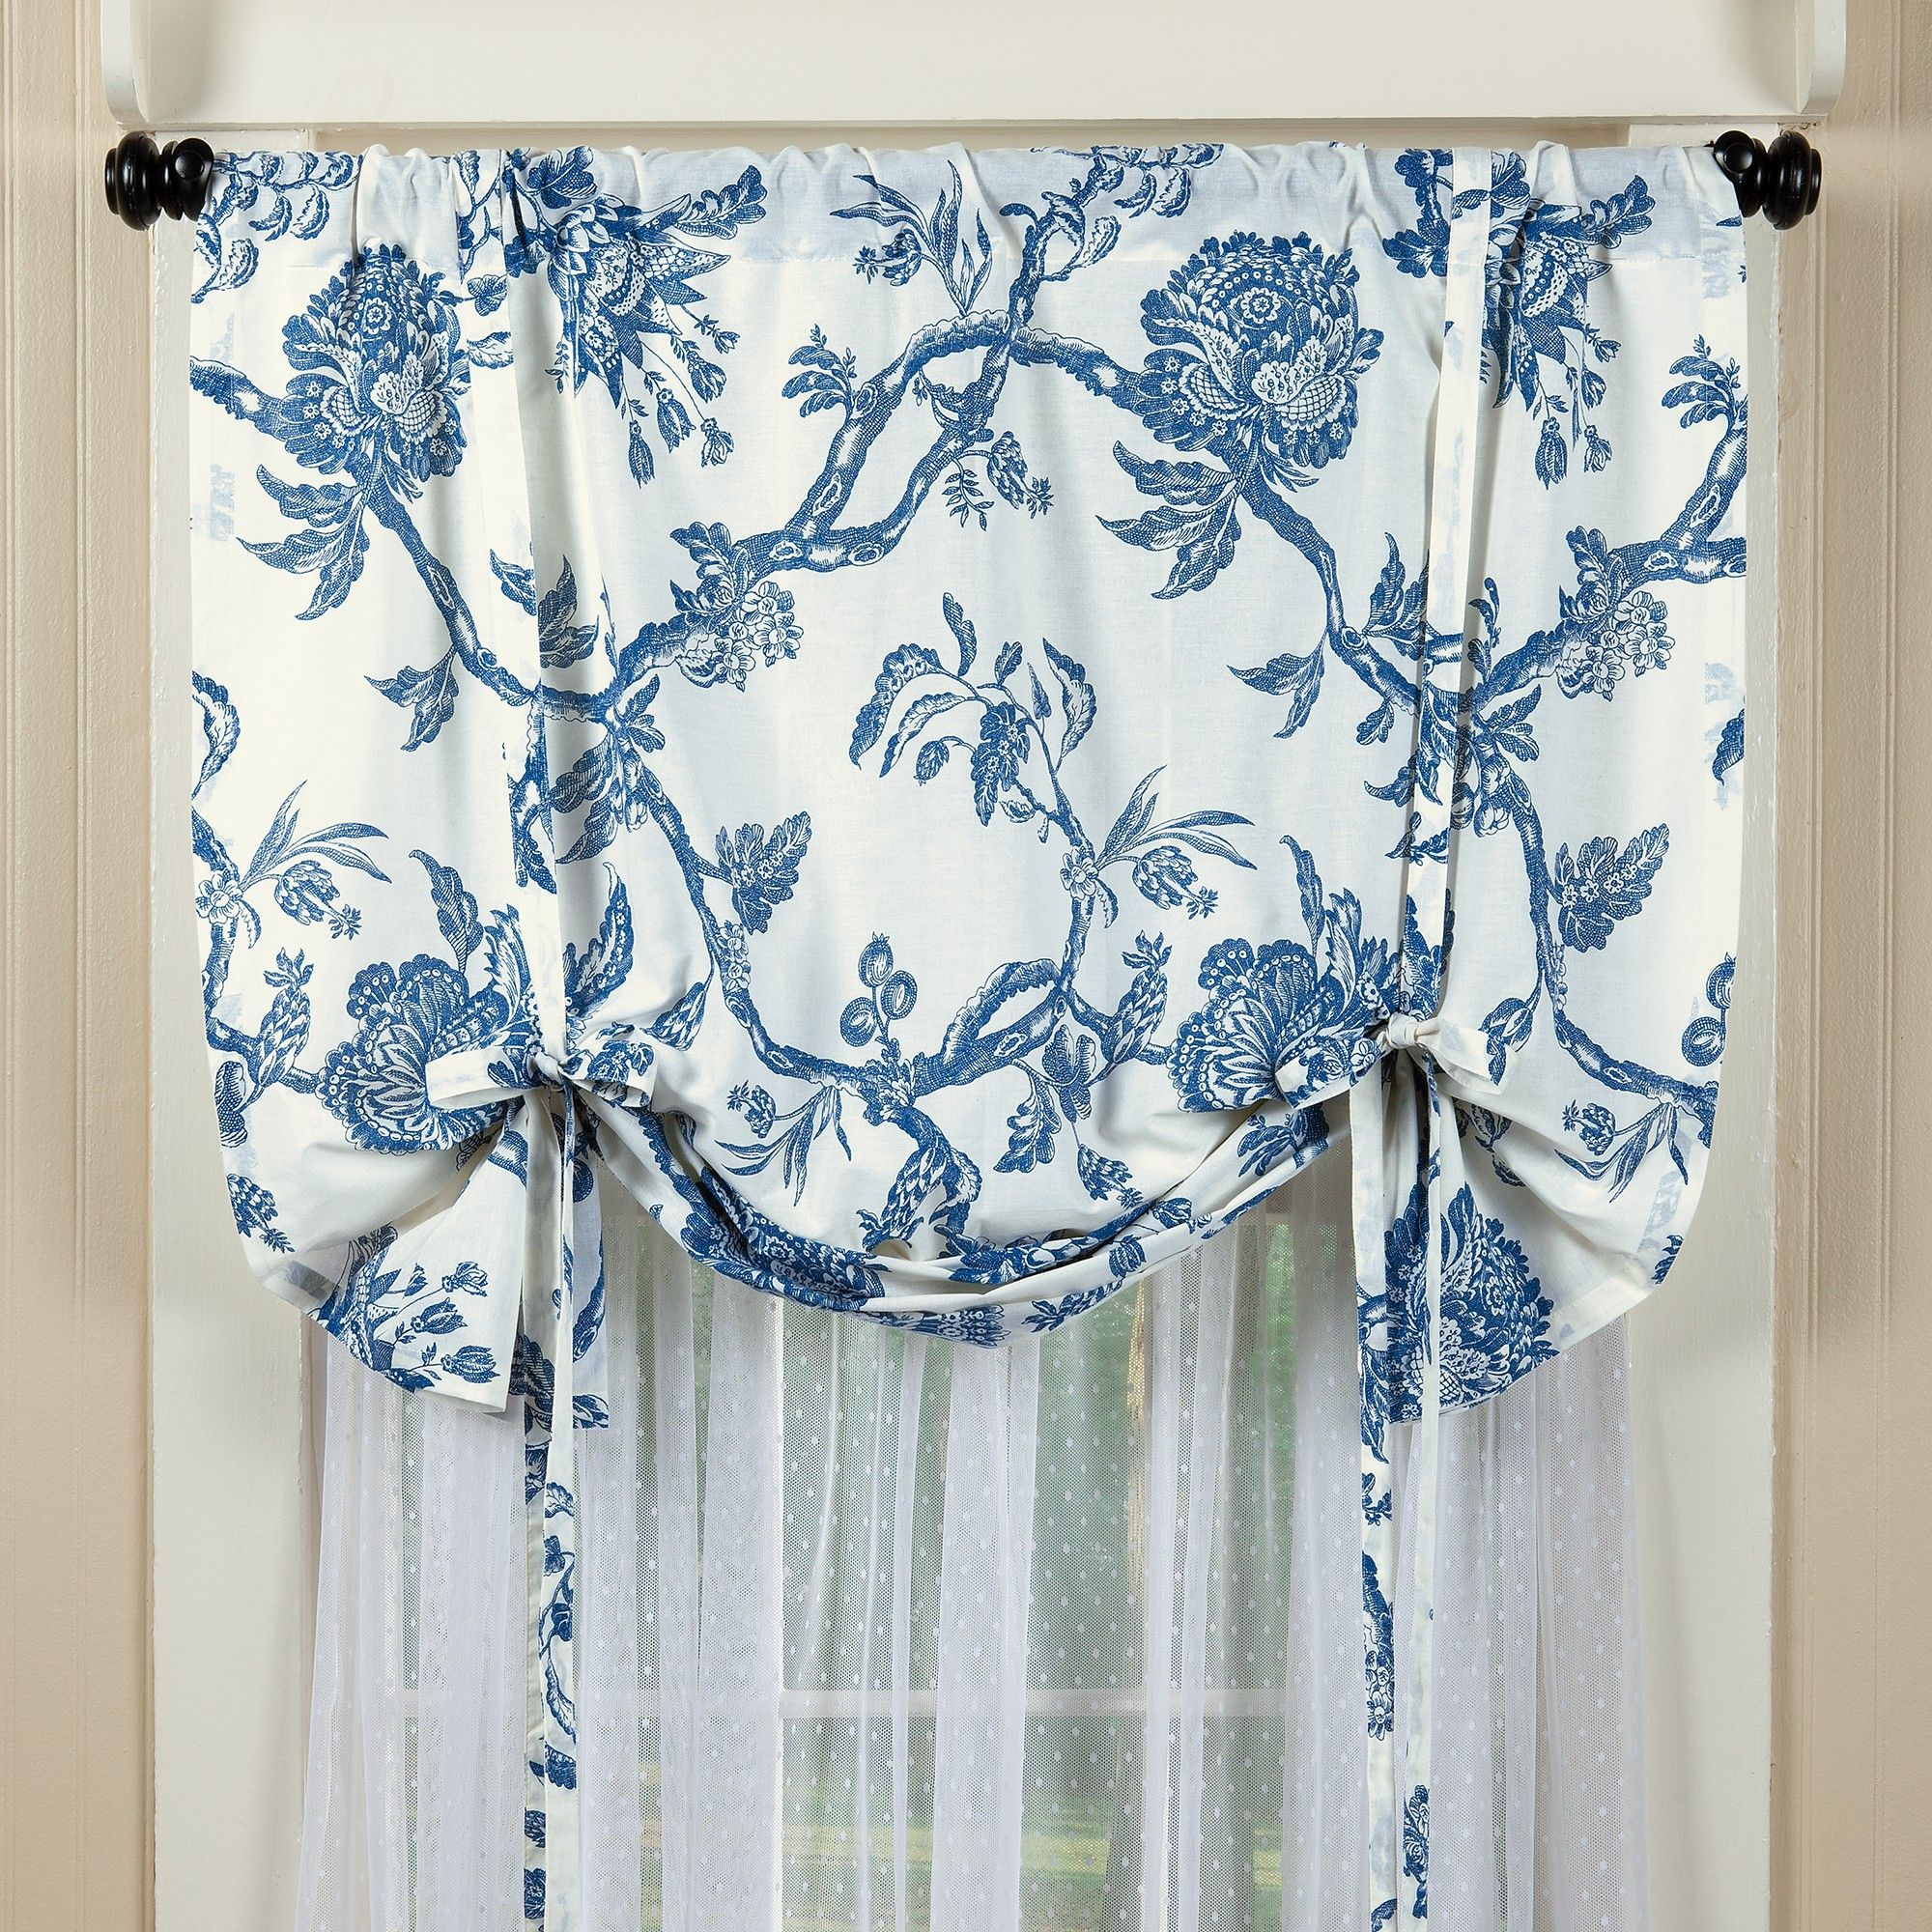 Blue Topiary Tie Up Valance Sturbridge Yankee Workshop Tie Up Valance Valance Tie Up Curtains